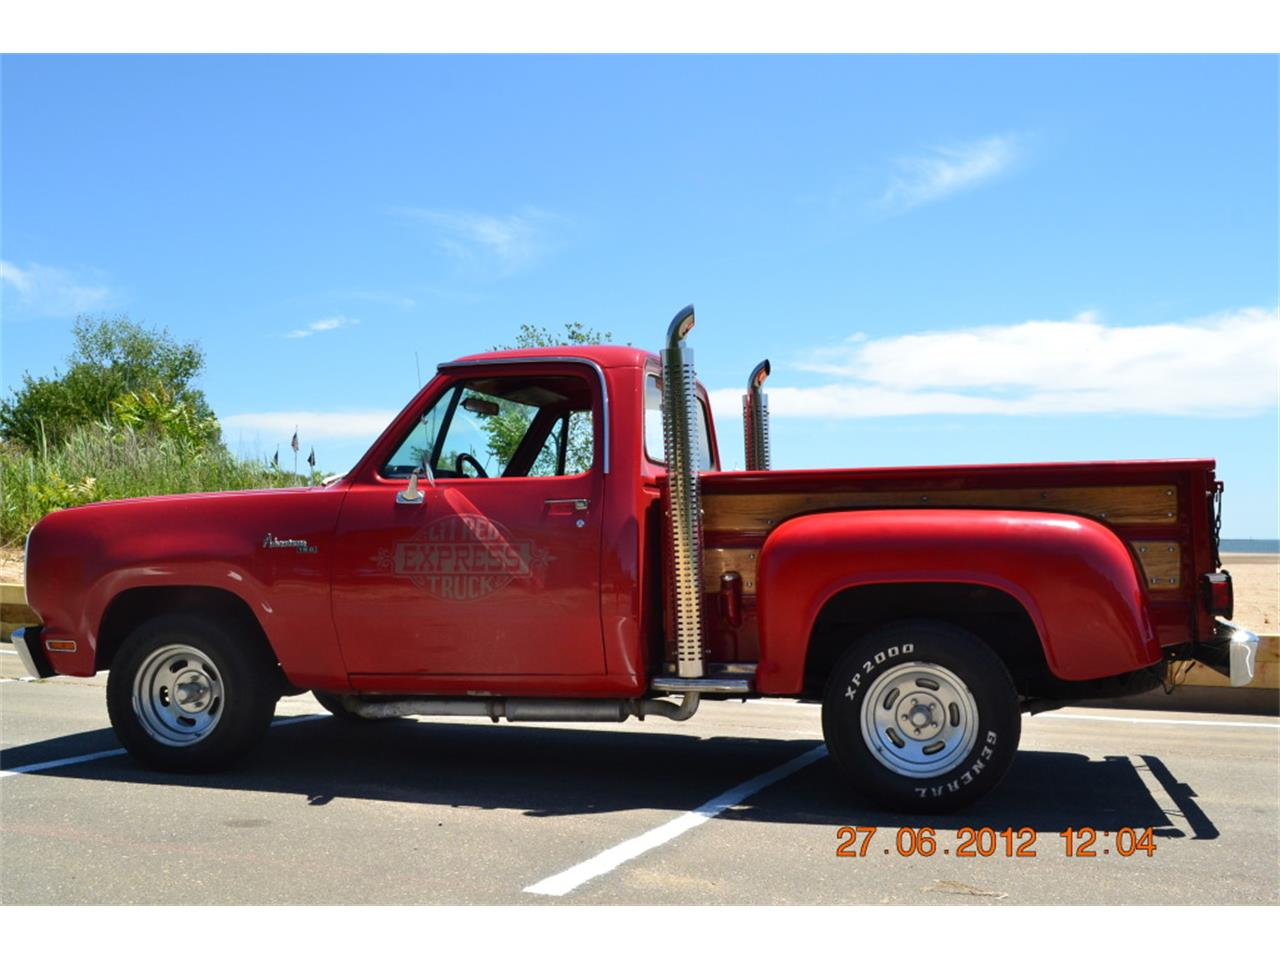 Large Picture of 1979 Dodge Little Red Express - $19,950.00 Offered by a Private Seller - EHSU